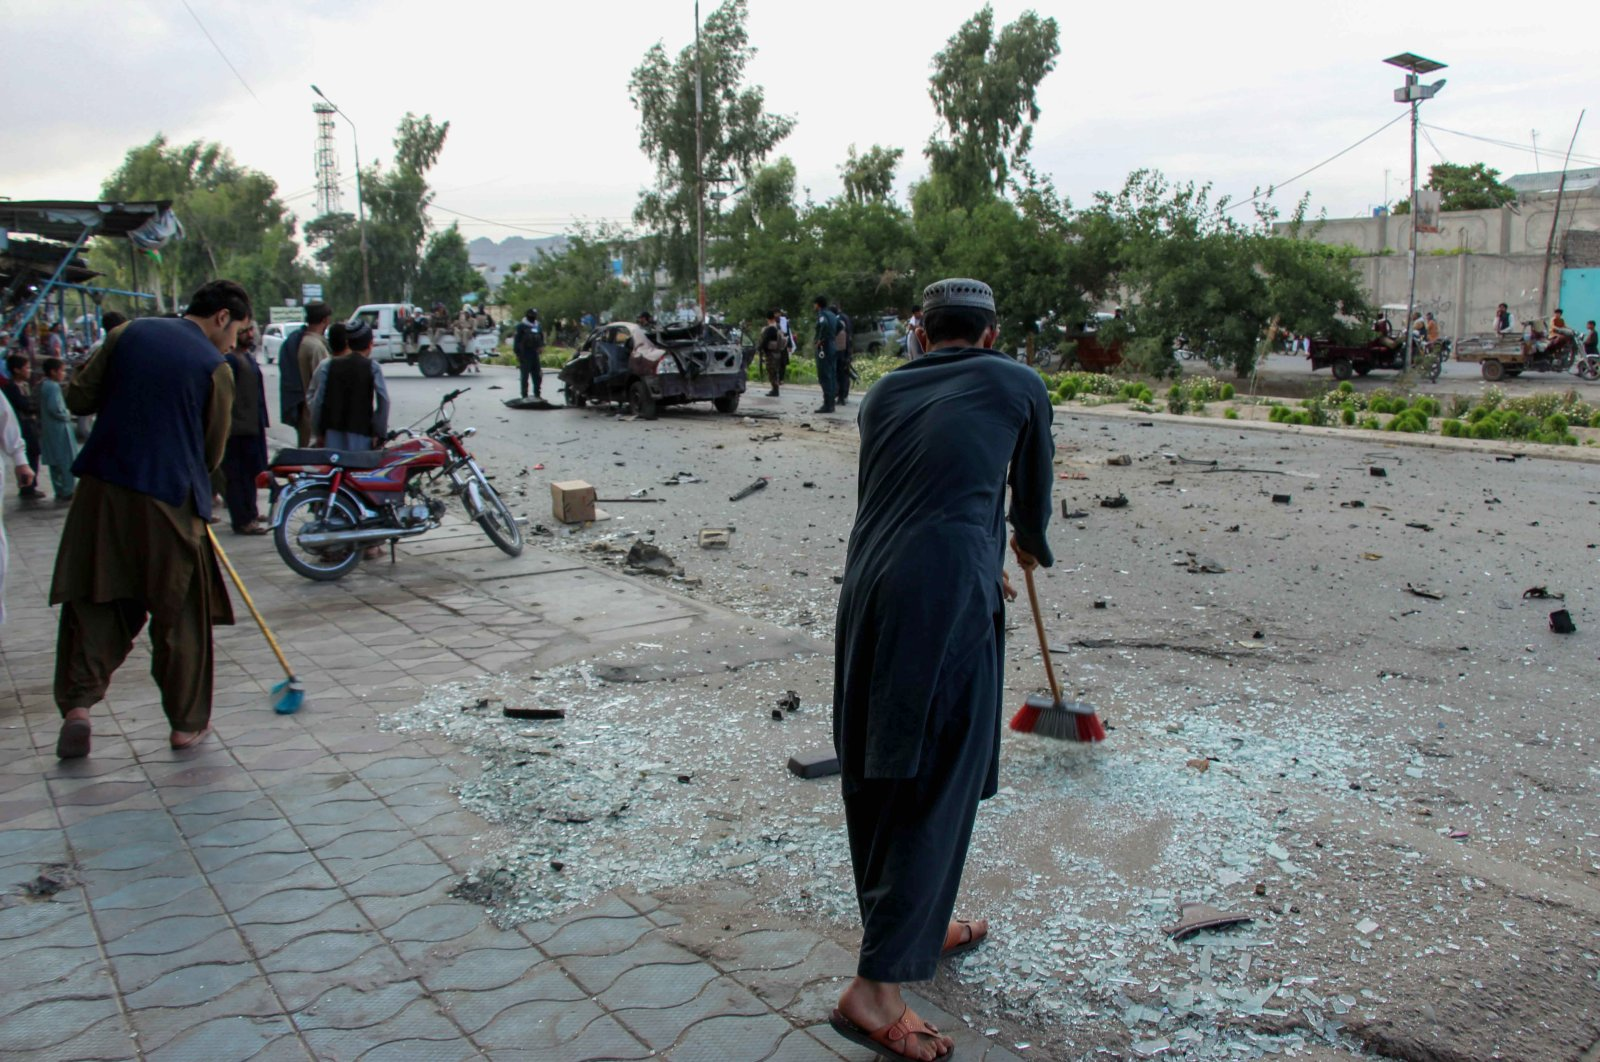 People remove smashed glass at the scene of a landmine explosion that targeted a vehicle of a local police commander, in Kandahar, Afghanistan, April 19, 2021. (EPA Photo)